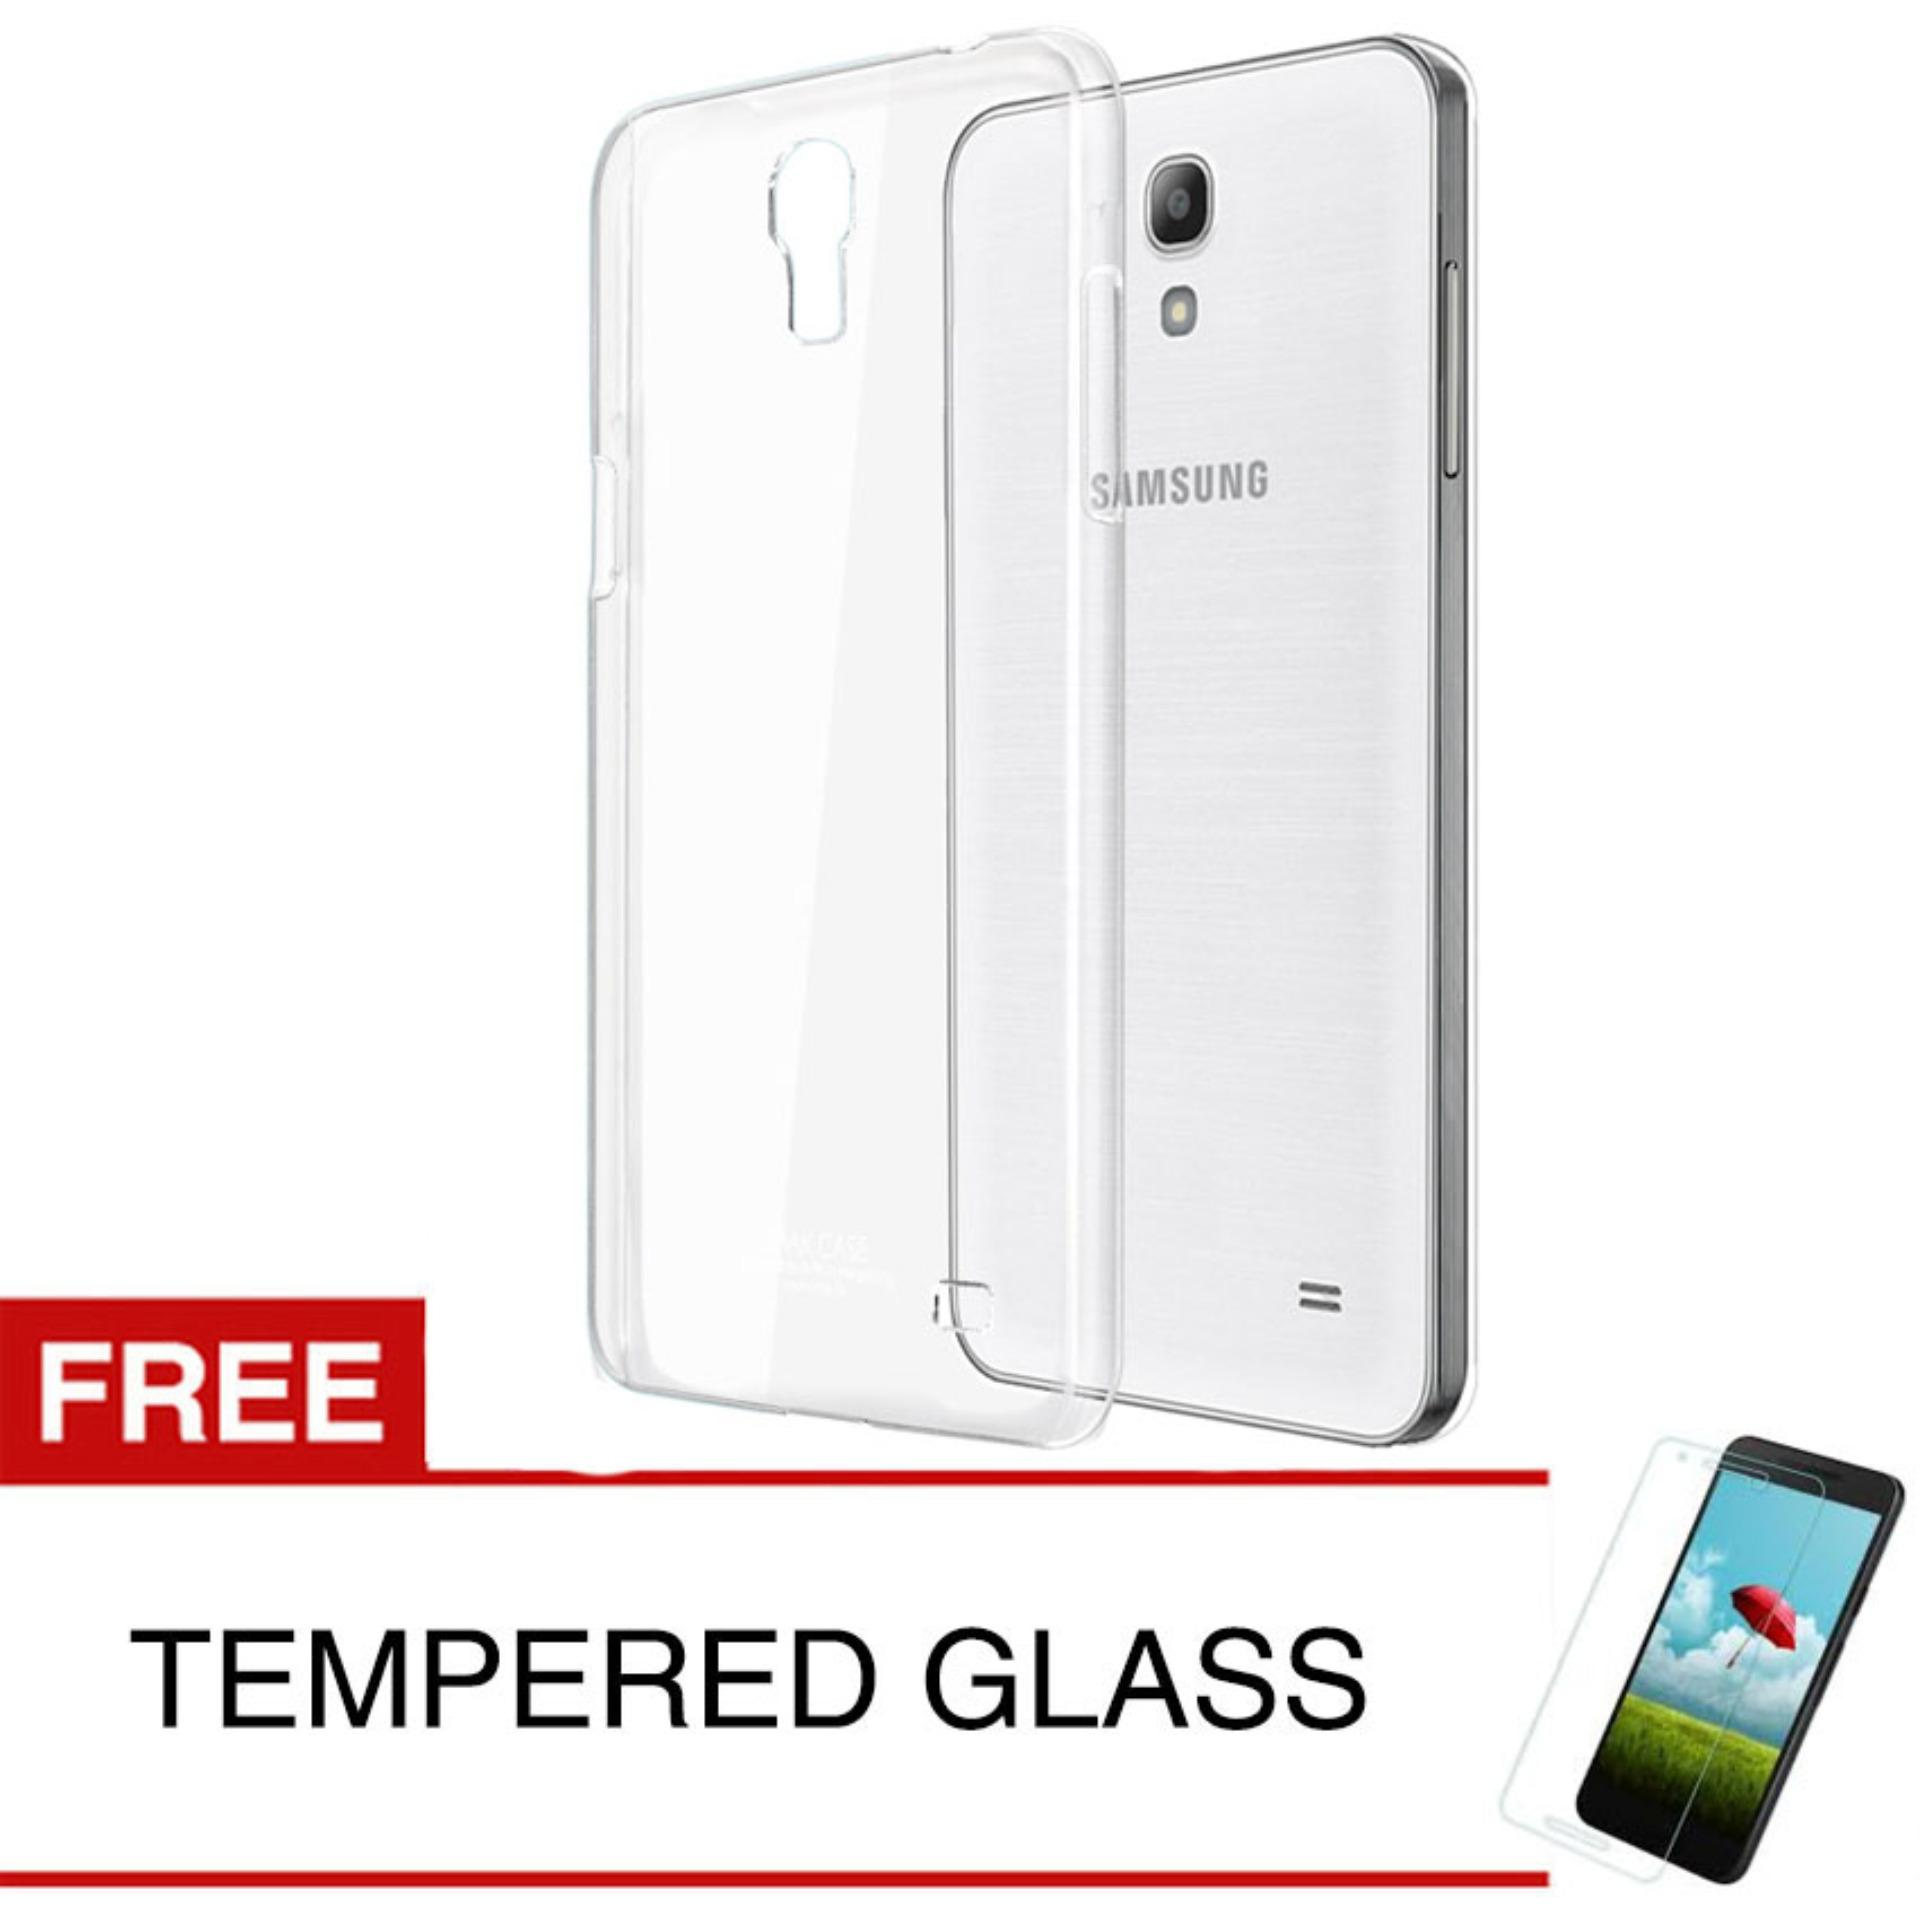 Hot Deals Crystal Case for Samsung Galaxy Mega 2 / G750 - Clear Hardcase - Gratis